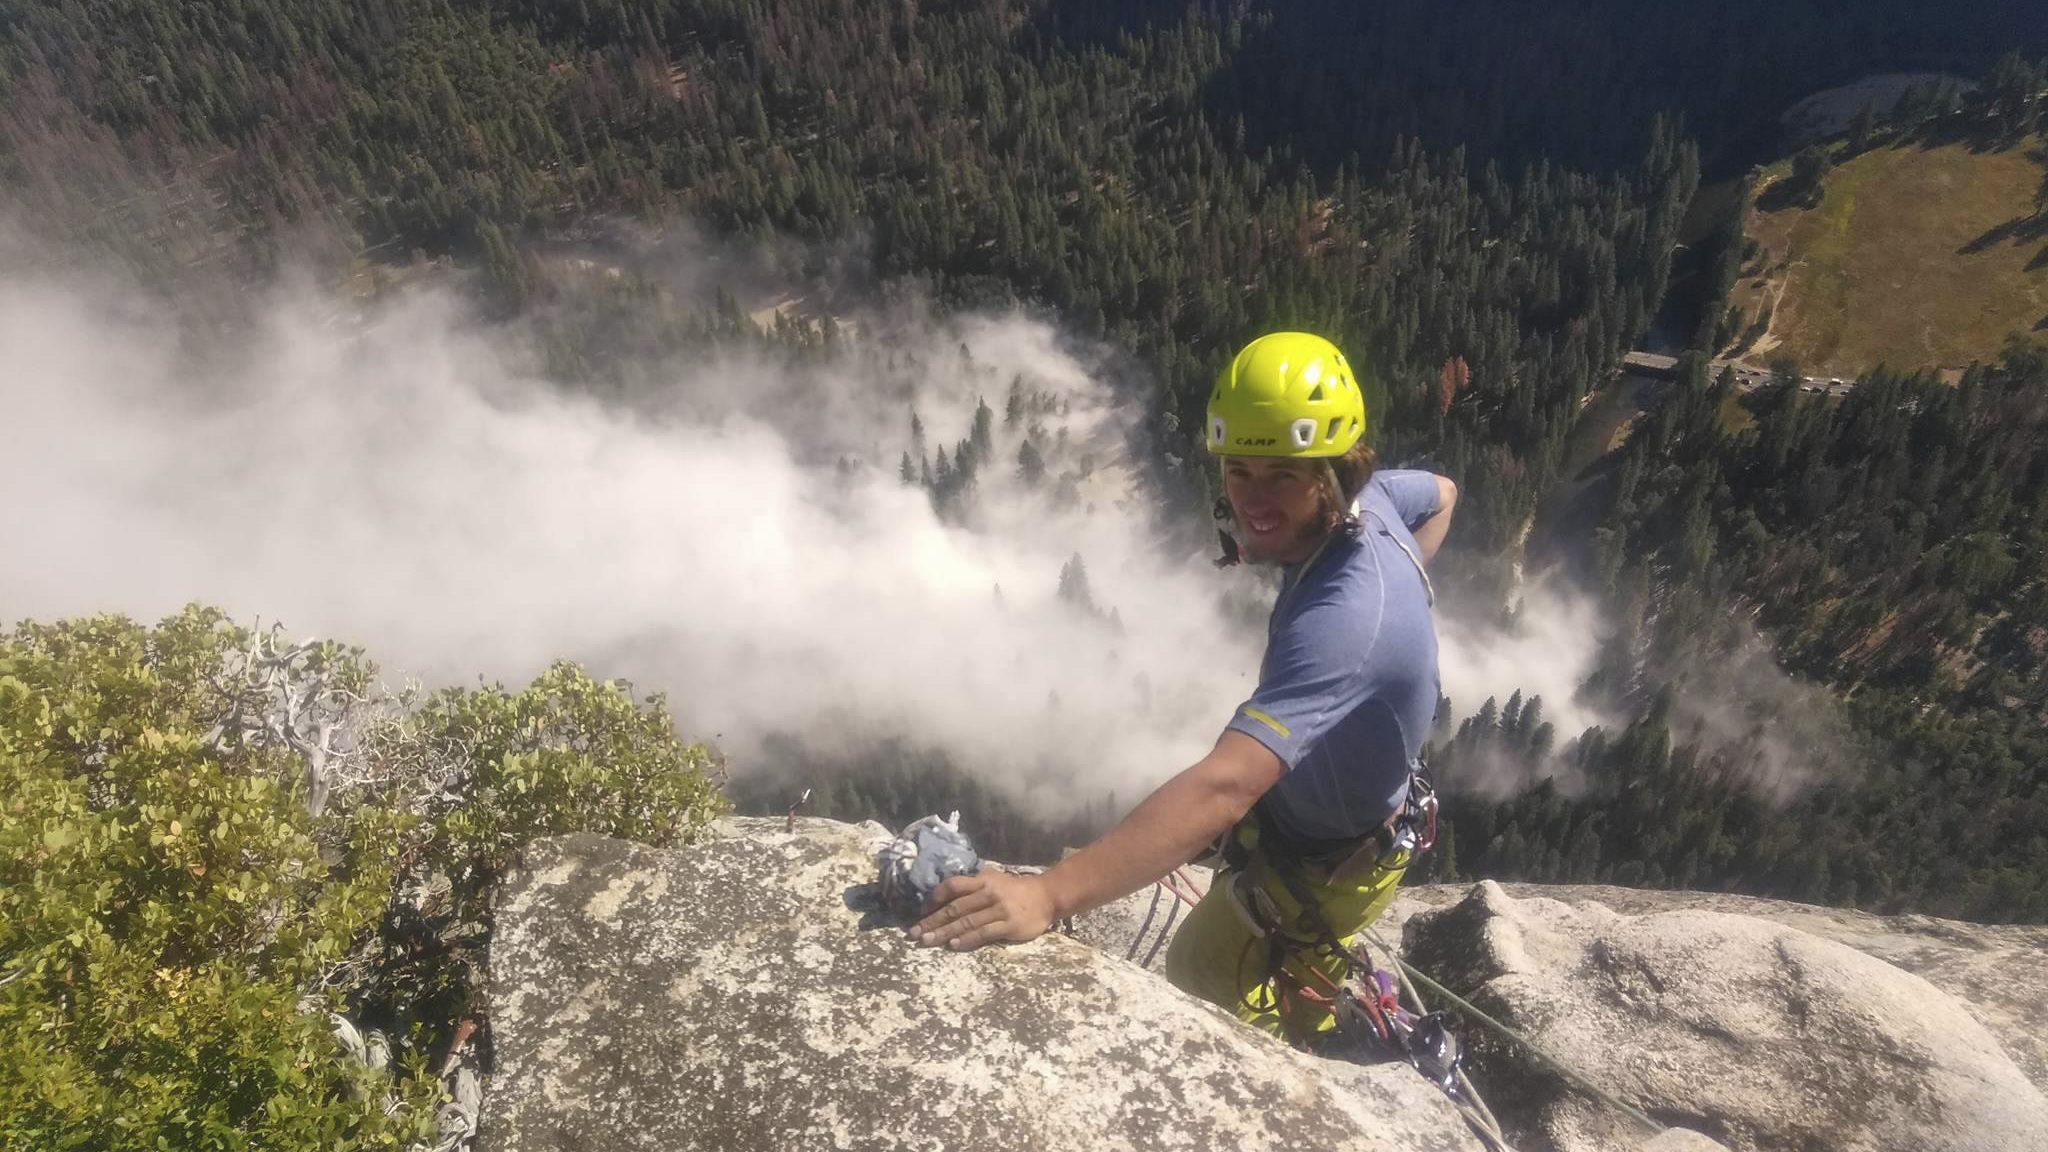 Couple from Great Britain were victims of Yosemite rockfall